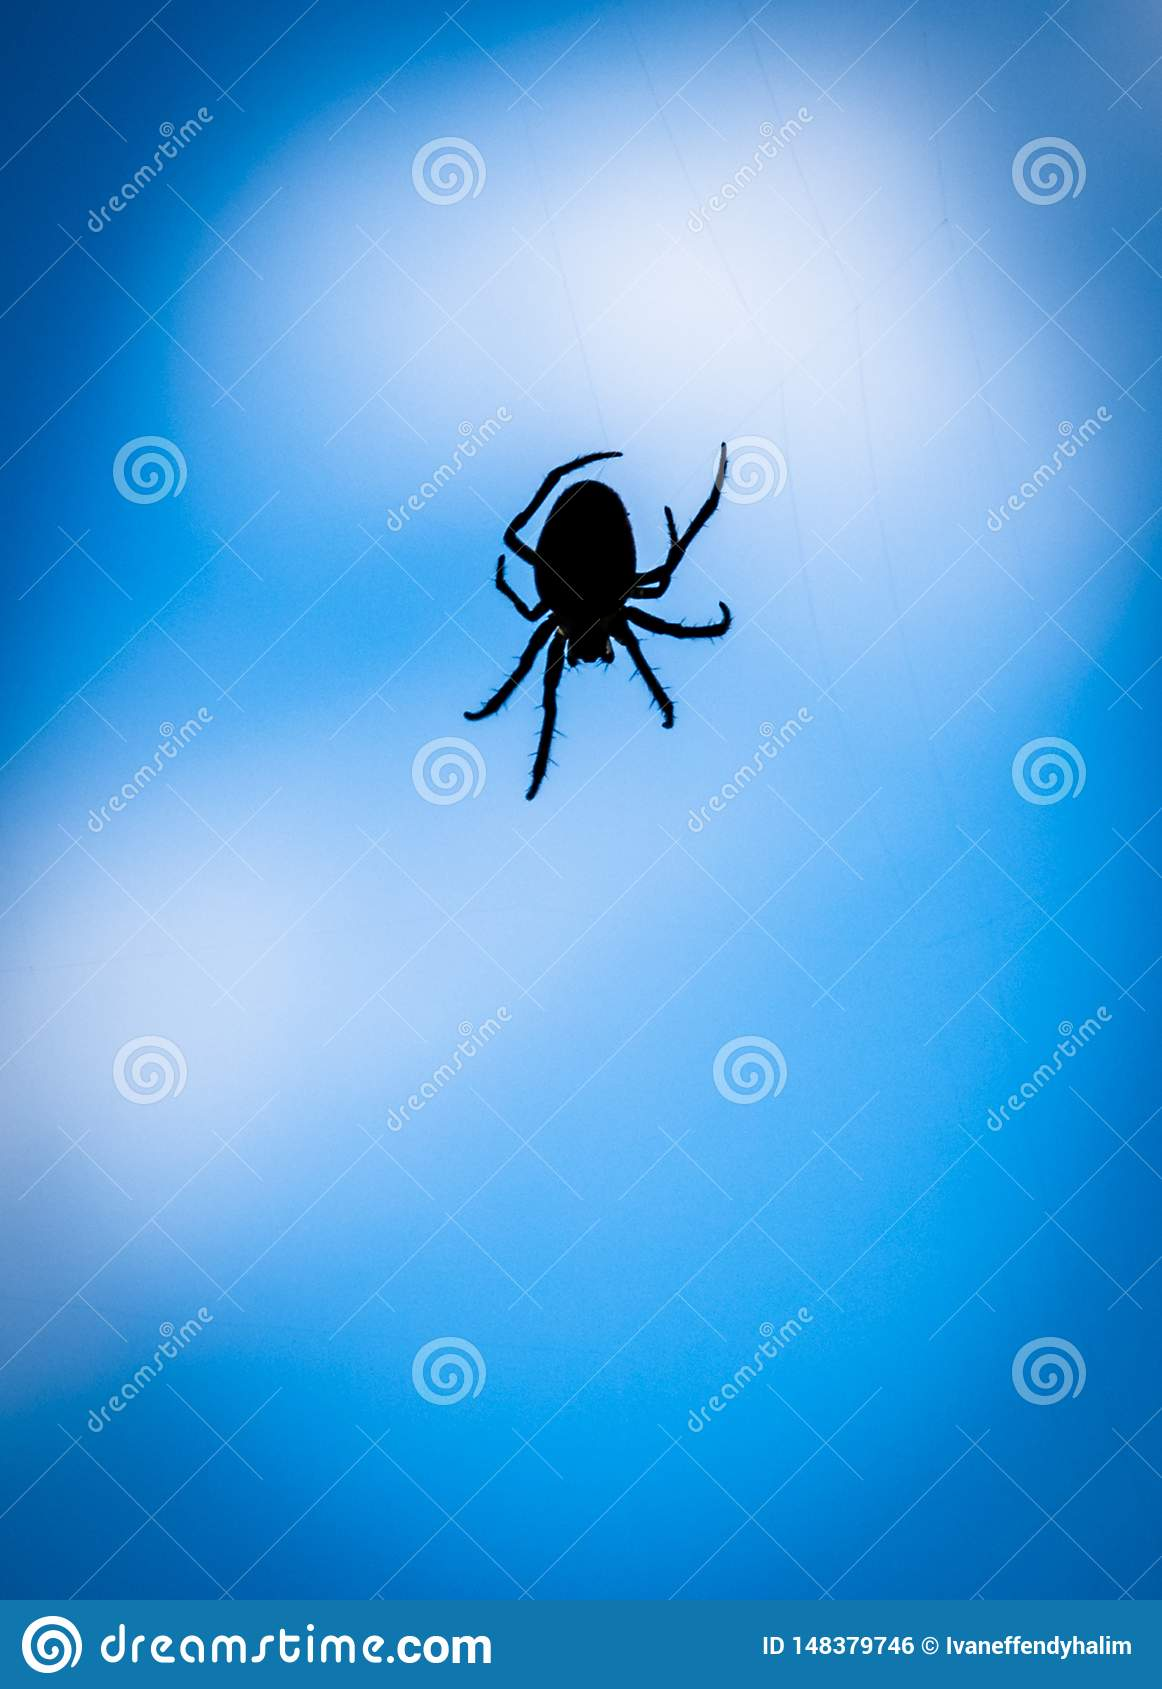 A close up silhouette of a spider with blue background